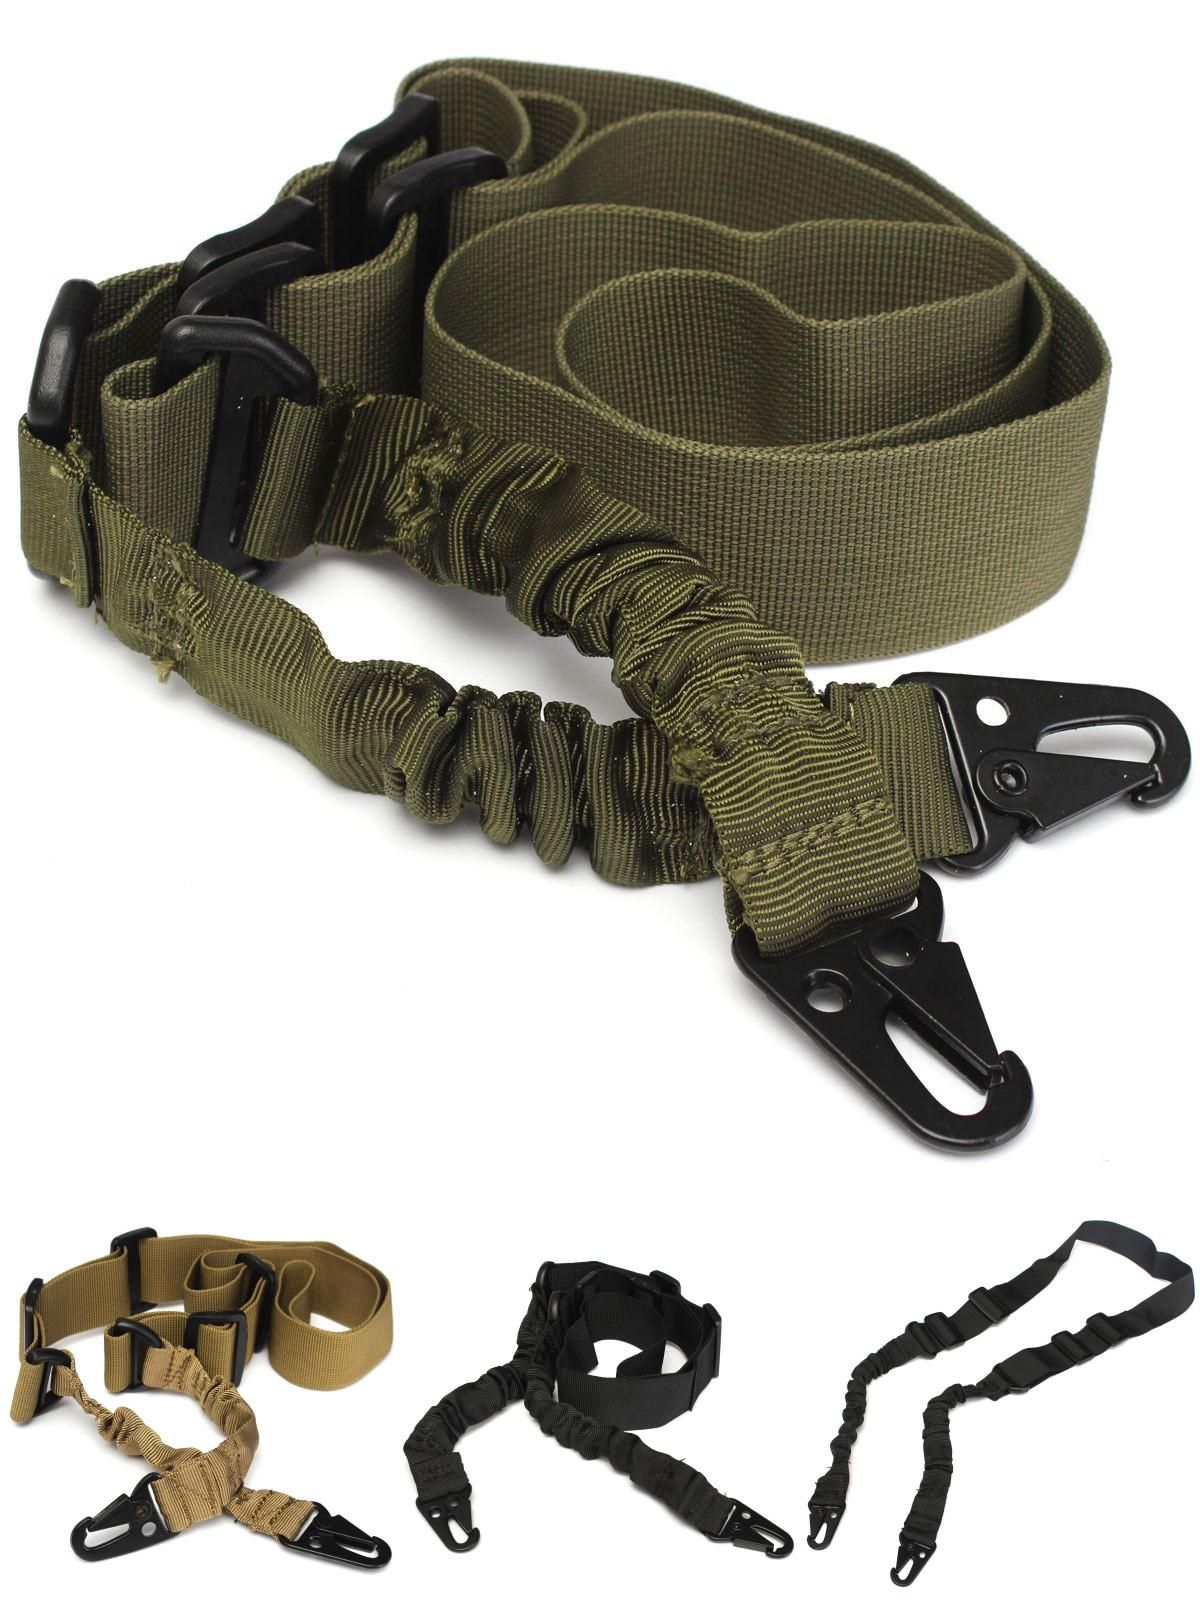 Adjustable Tactical 2 Two Point Bungee Rifle Gun Sling Strap Military Hunting